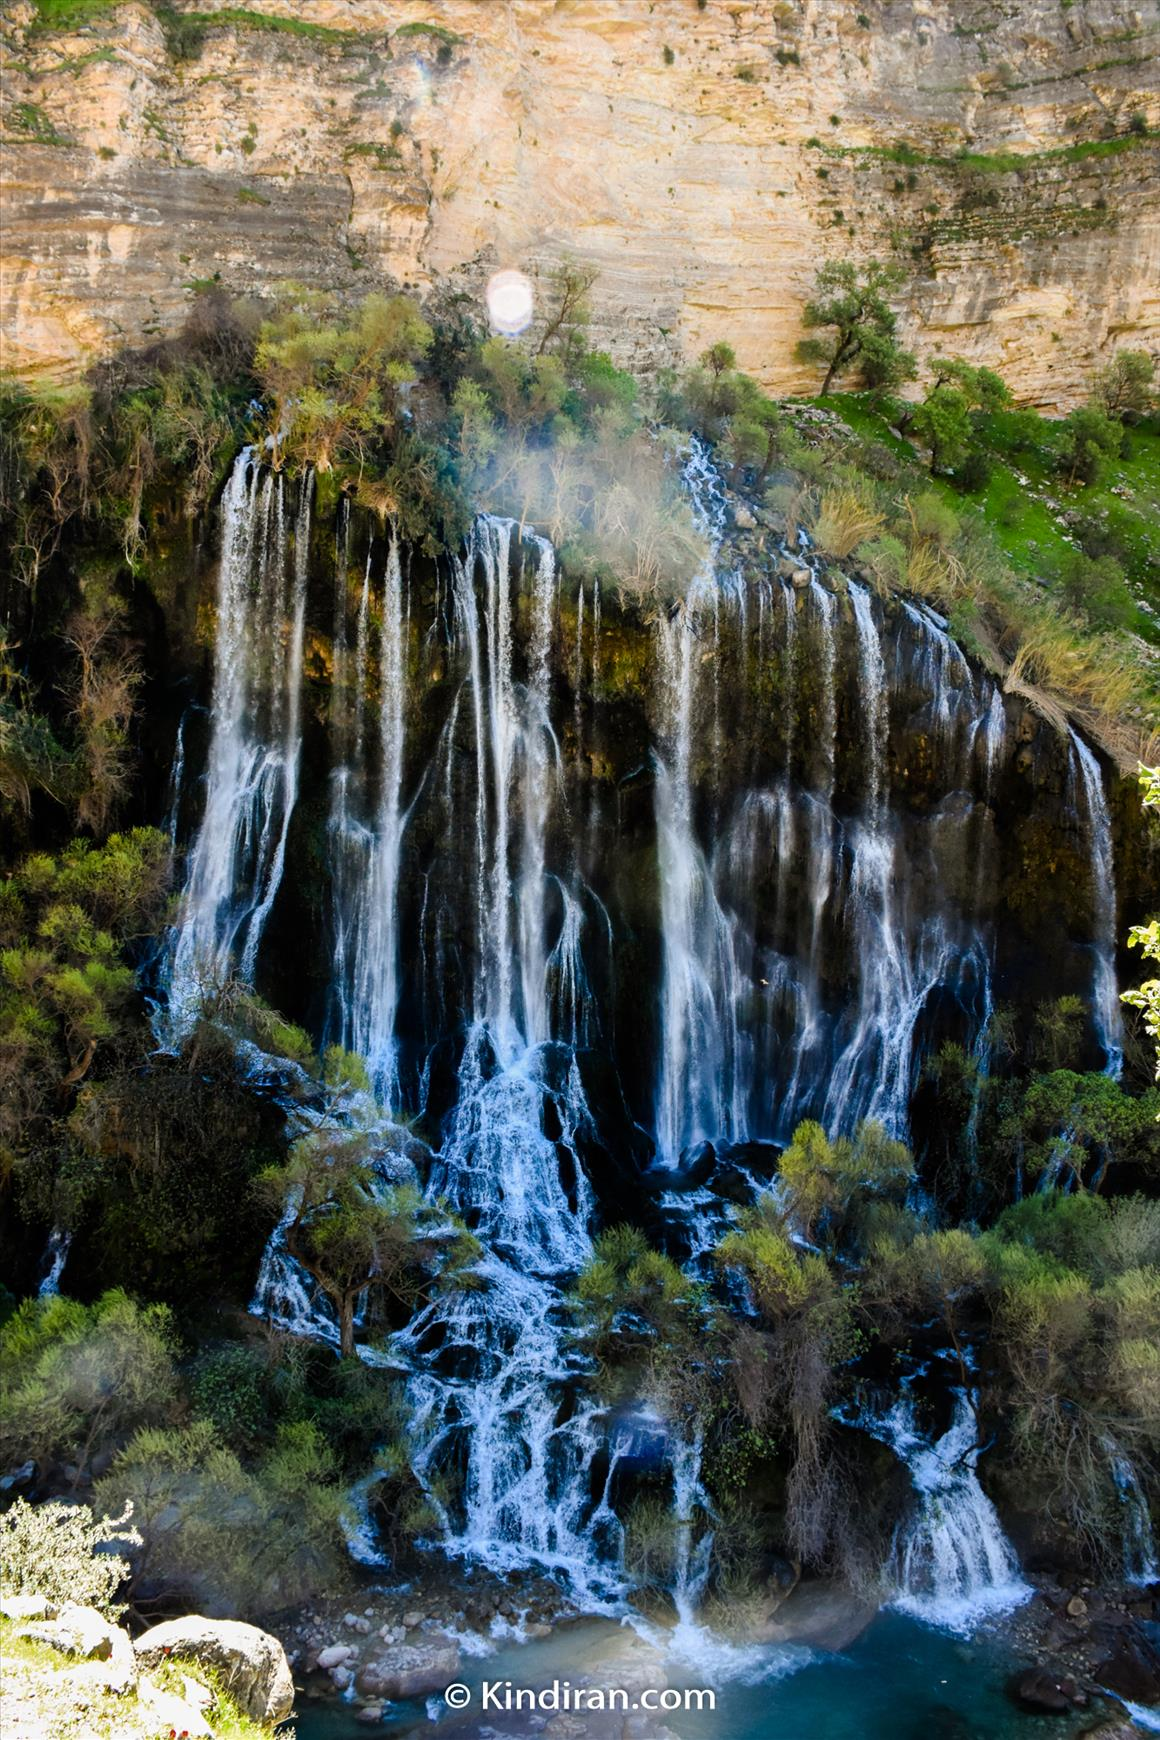 Shevi, the Largest waterfall in Iran